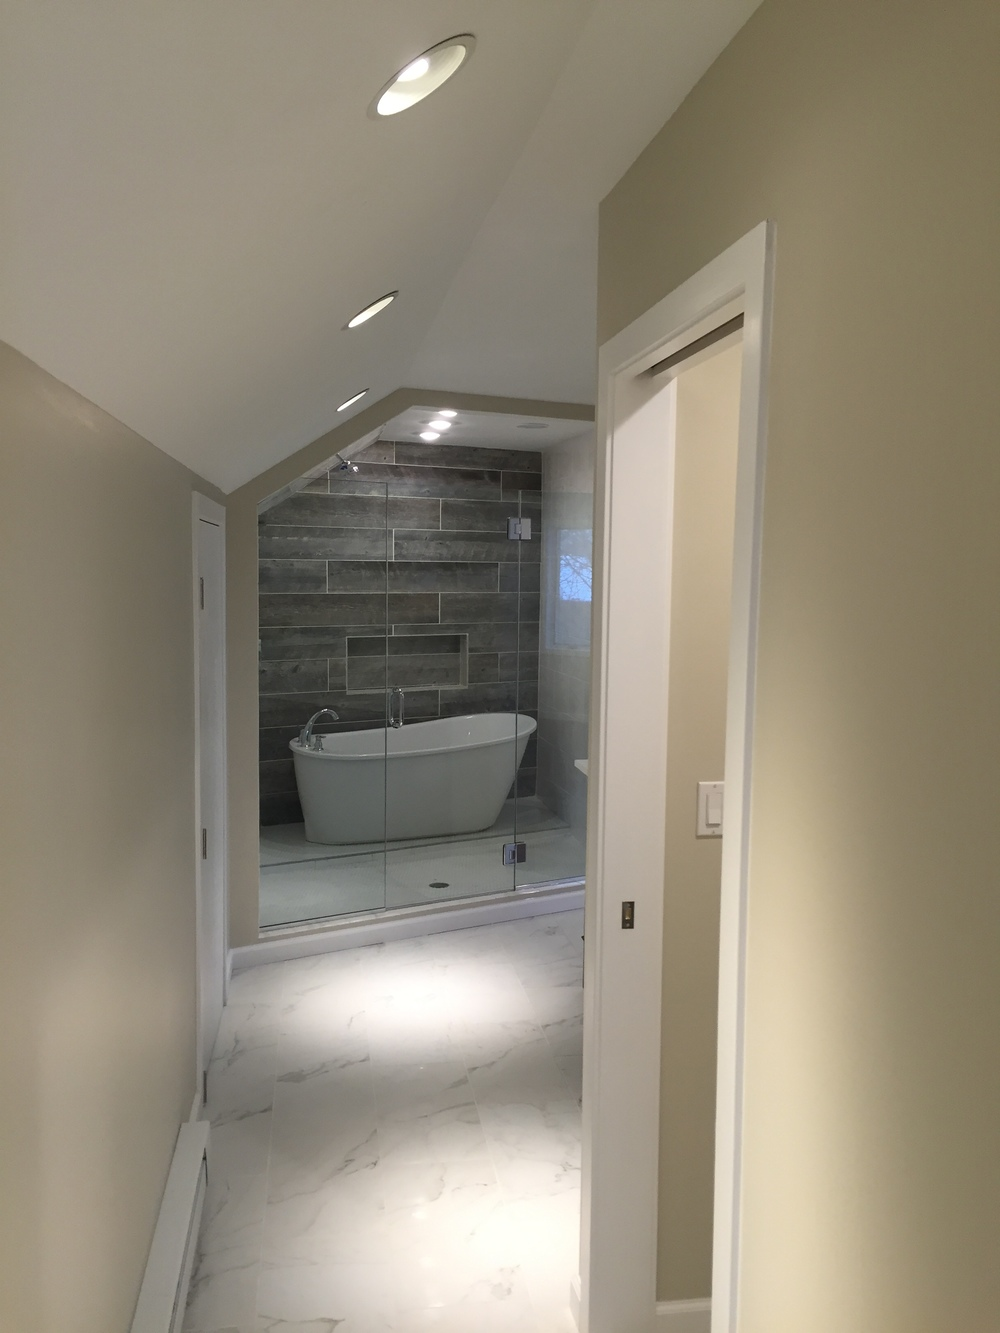 Shaw - bathroom renovation waterford 225.JPG